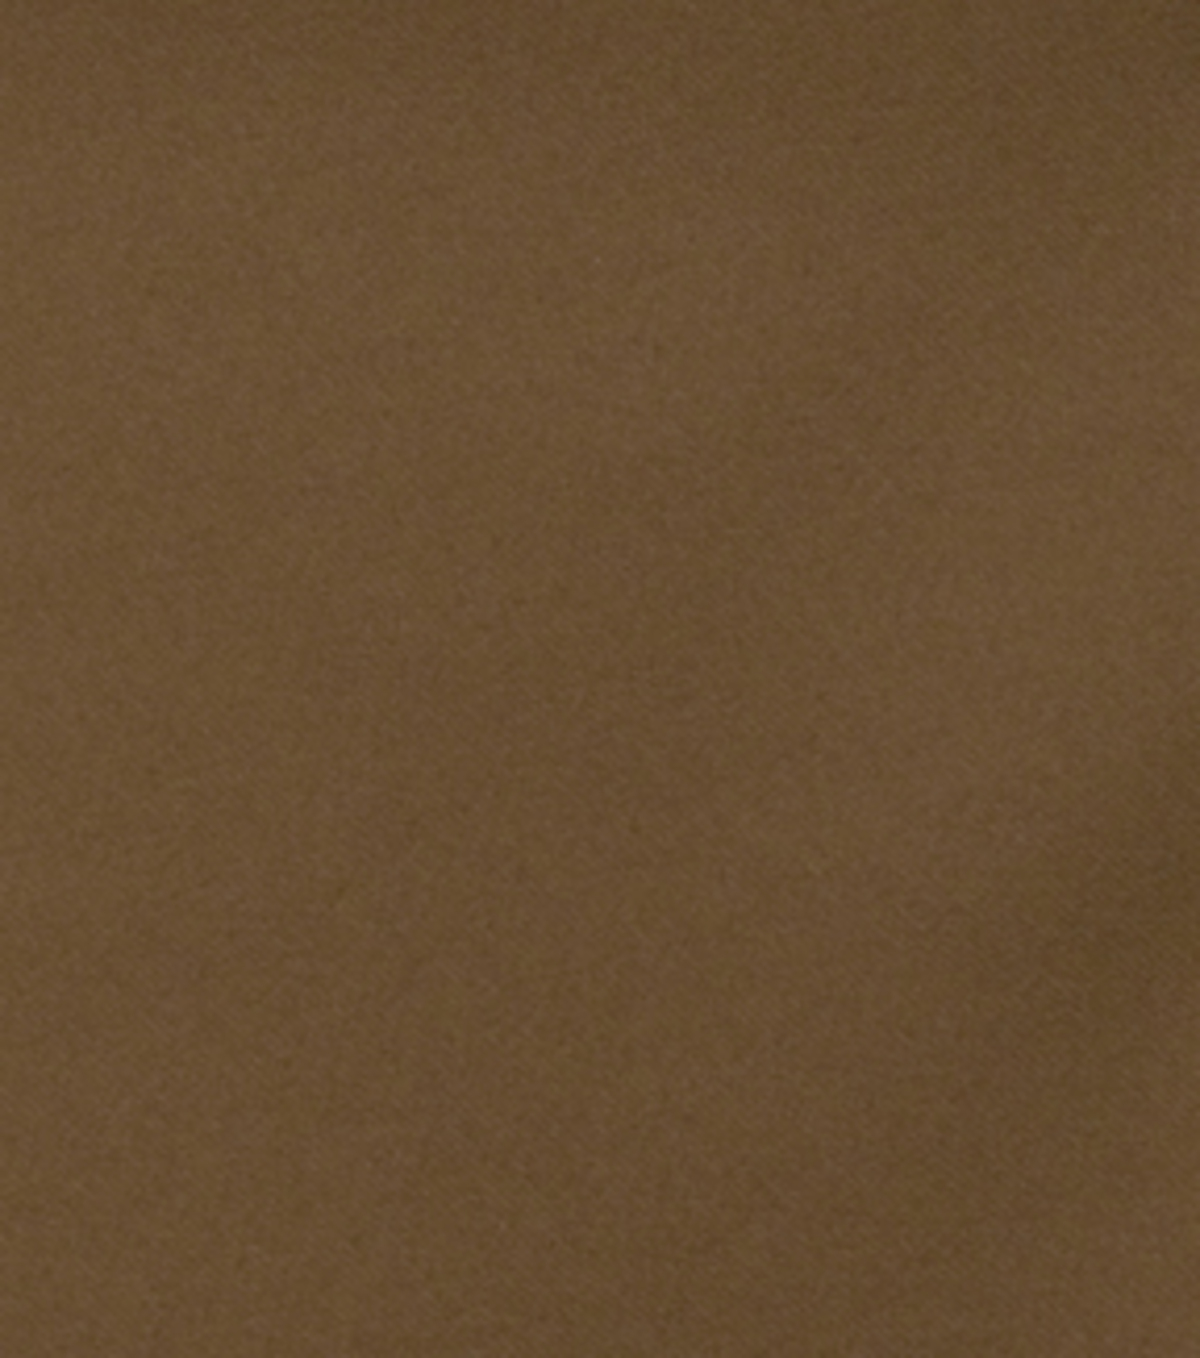 Home Decor 8\u0022x8\u0022 Fabric Swatch-Signature Series Birzai Chocolate